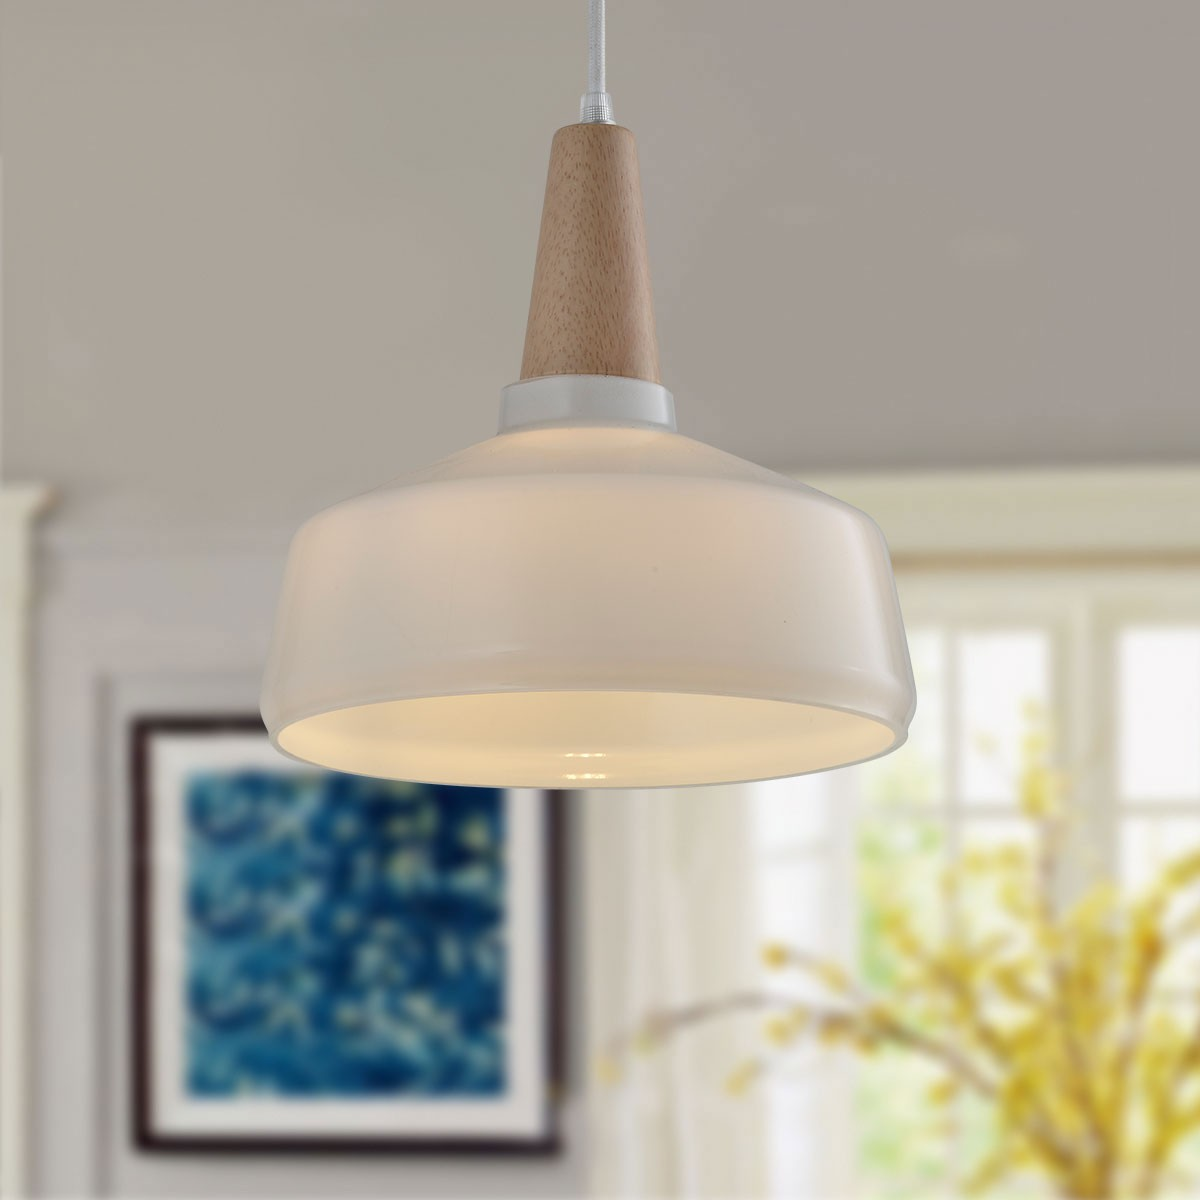 1-Light White Wood/Glass Modern Pendant Light (KP10512-1A)